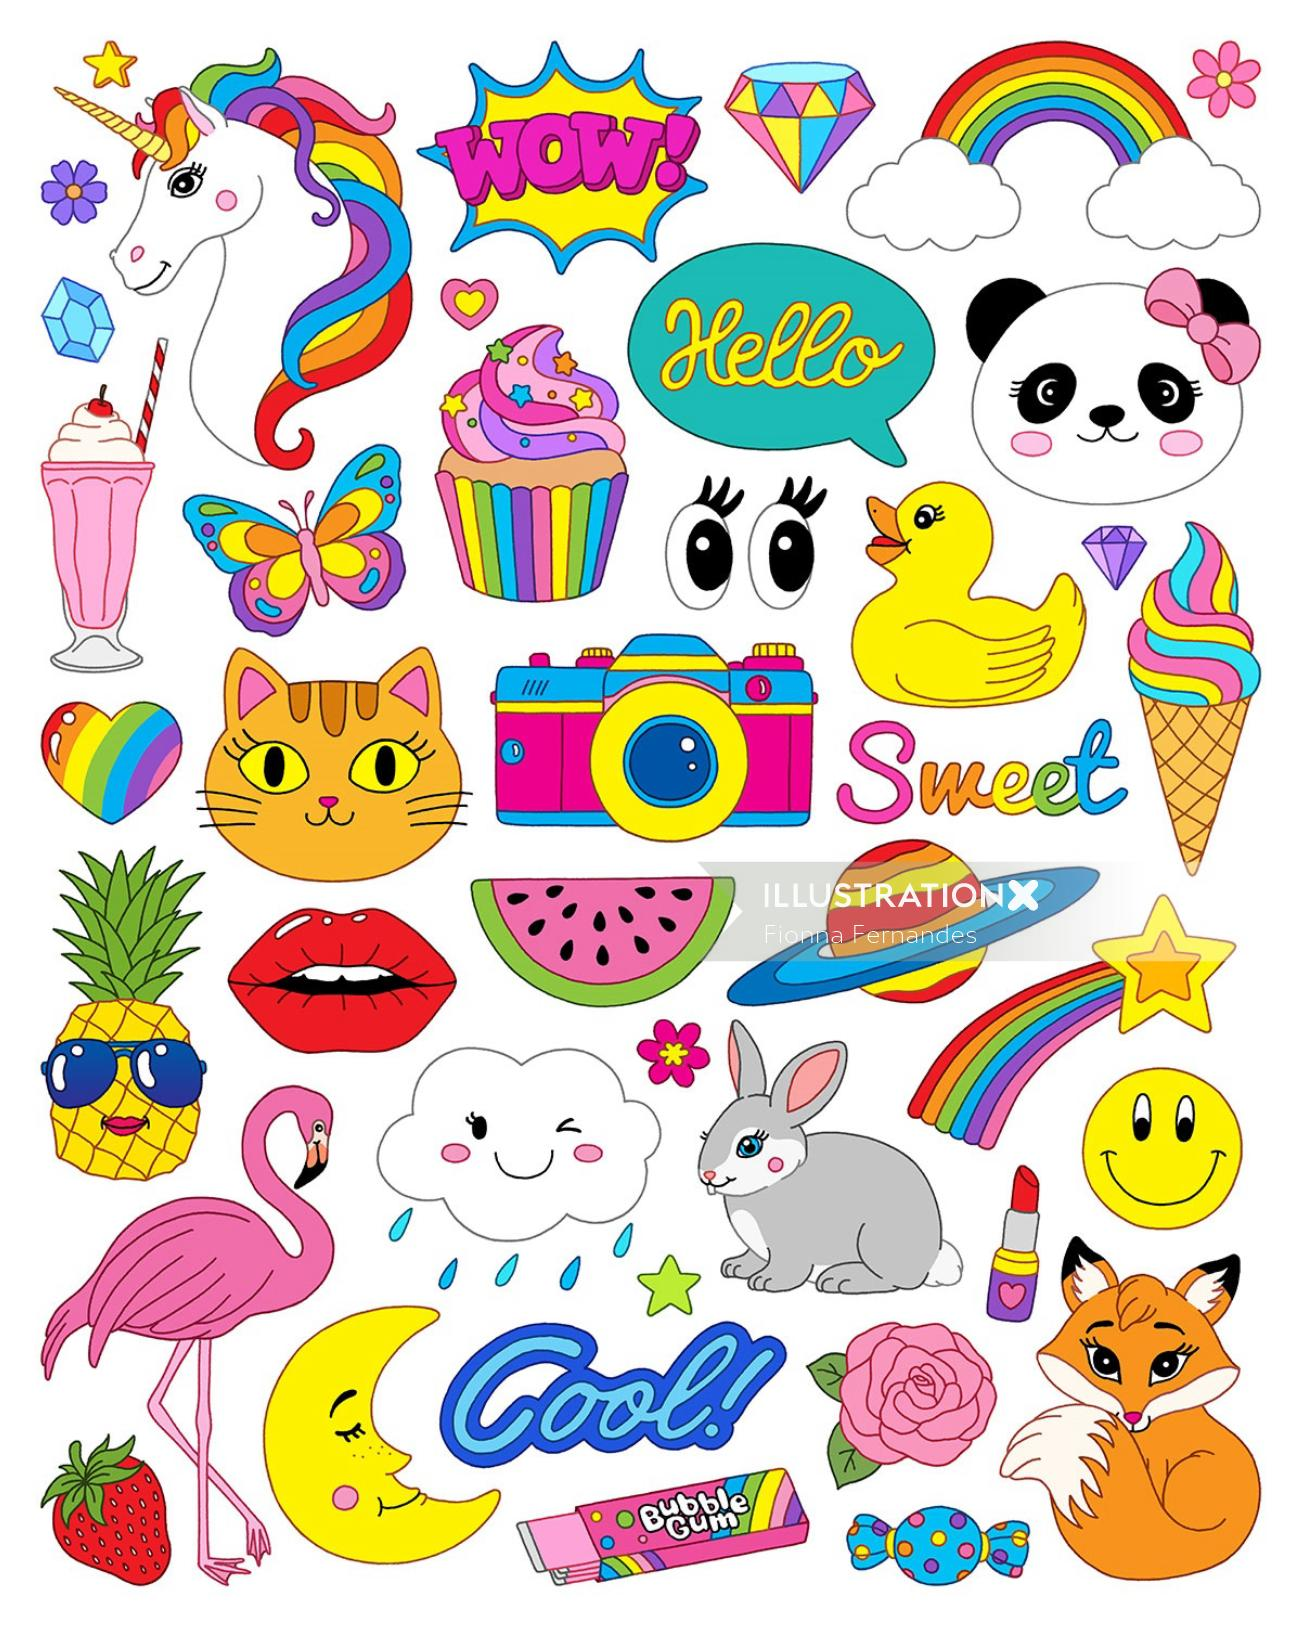 Stylistic collage of girl stickers